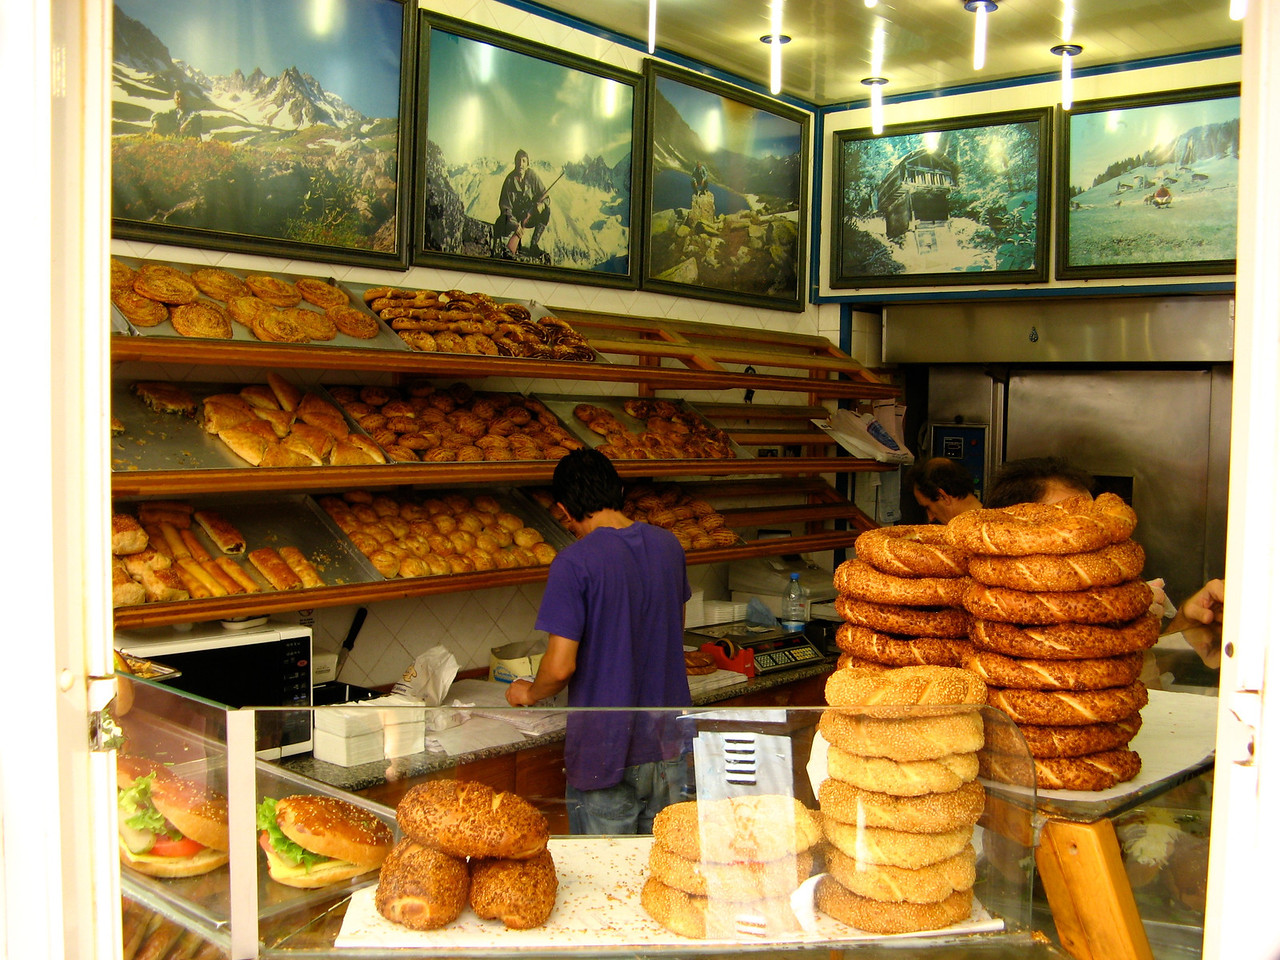 After lunch, you can always visit a bakery right down the street.